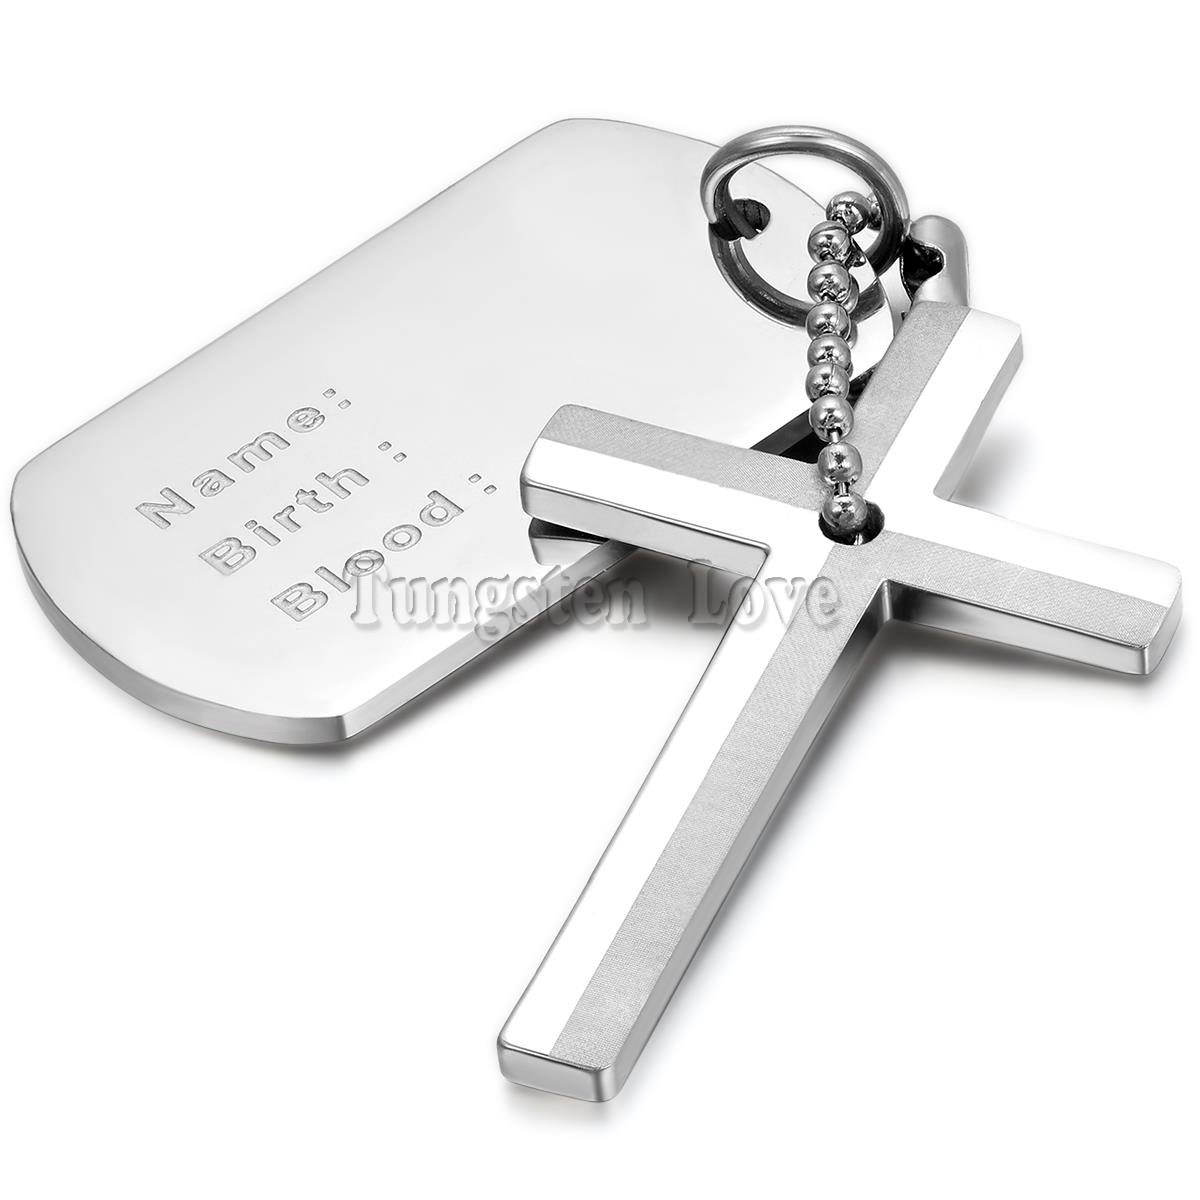 New stainless steel necklaces men dog tag with cross pendant new stainless steel necklaces men dog tag with cross pendant necklace 22 inches silver fashion collar masculino in pendant necklaces from jewelry aloadofball Gallery